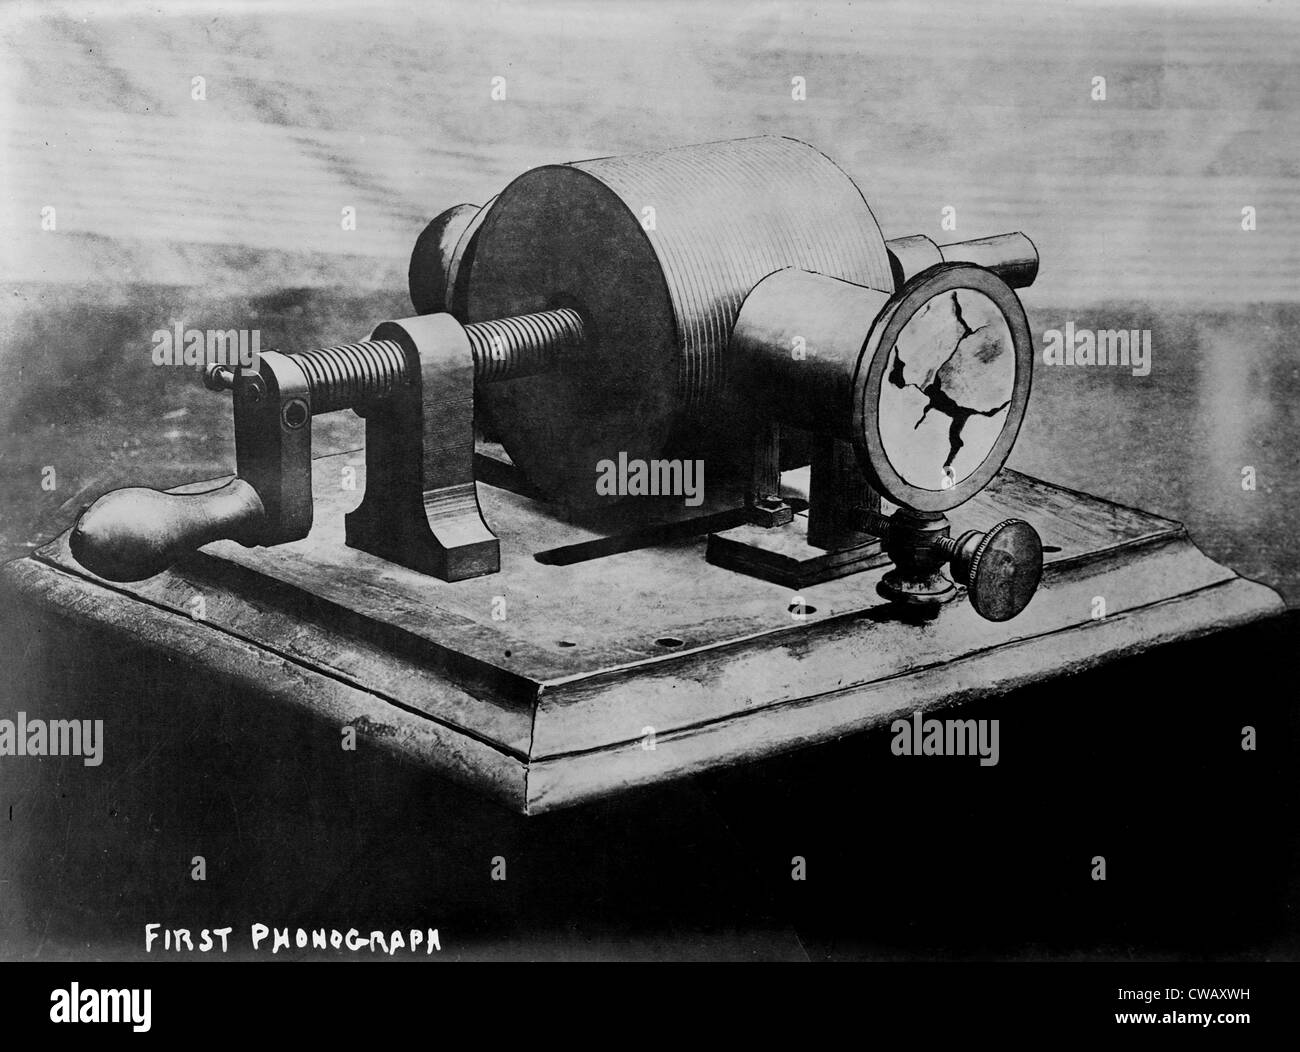 The first phonograph, circa 1860s. - Stock Image